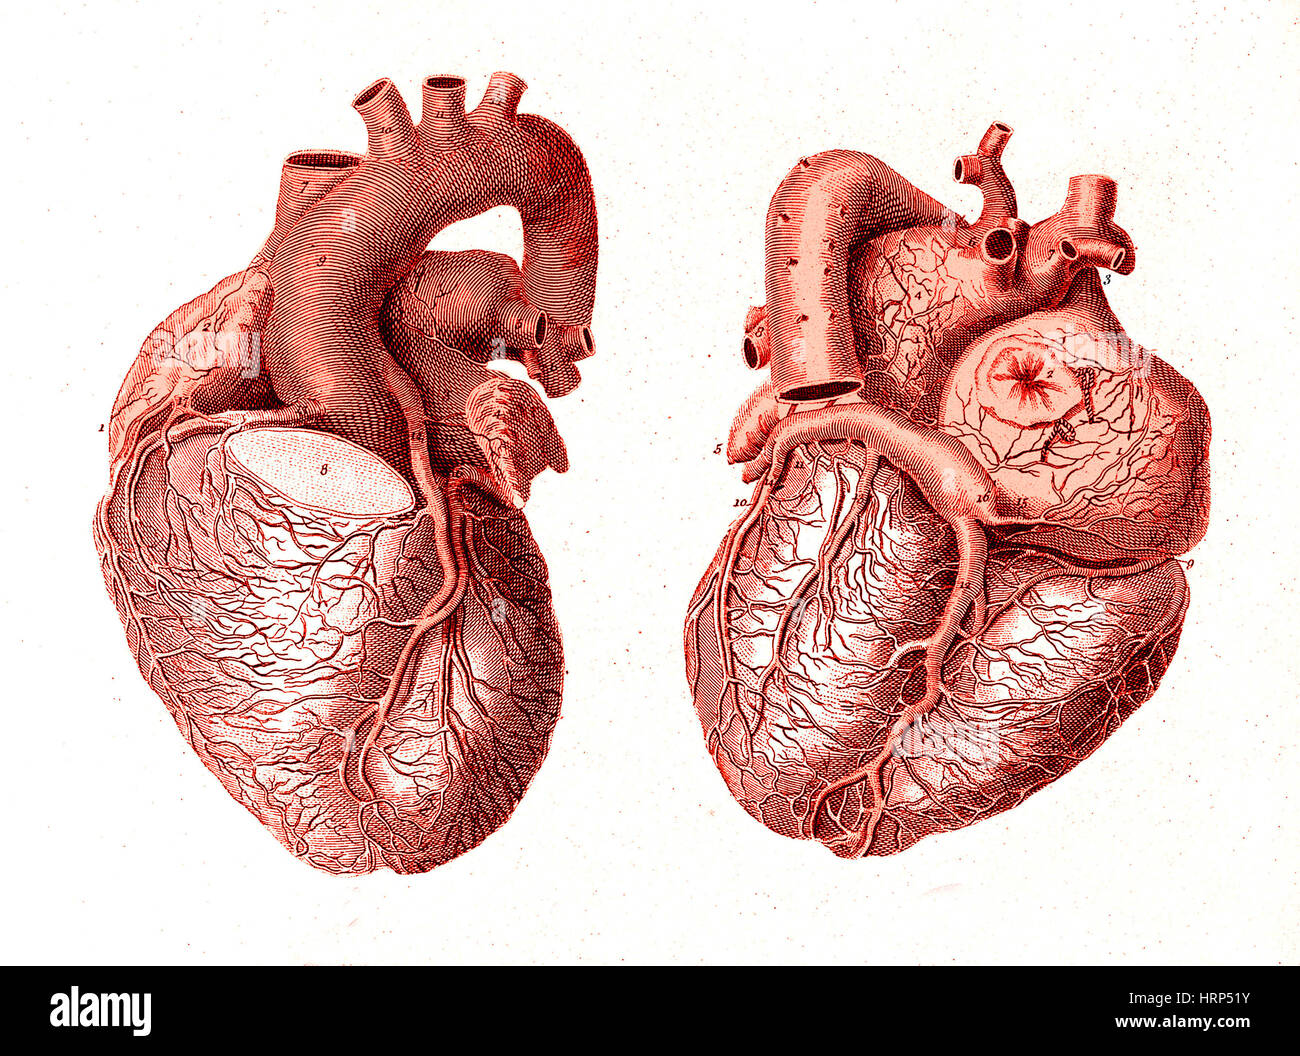 Dissected Heart Stock Photos & Dissected Heart Stock Images - Alamy